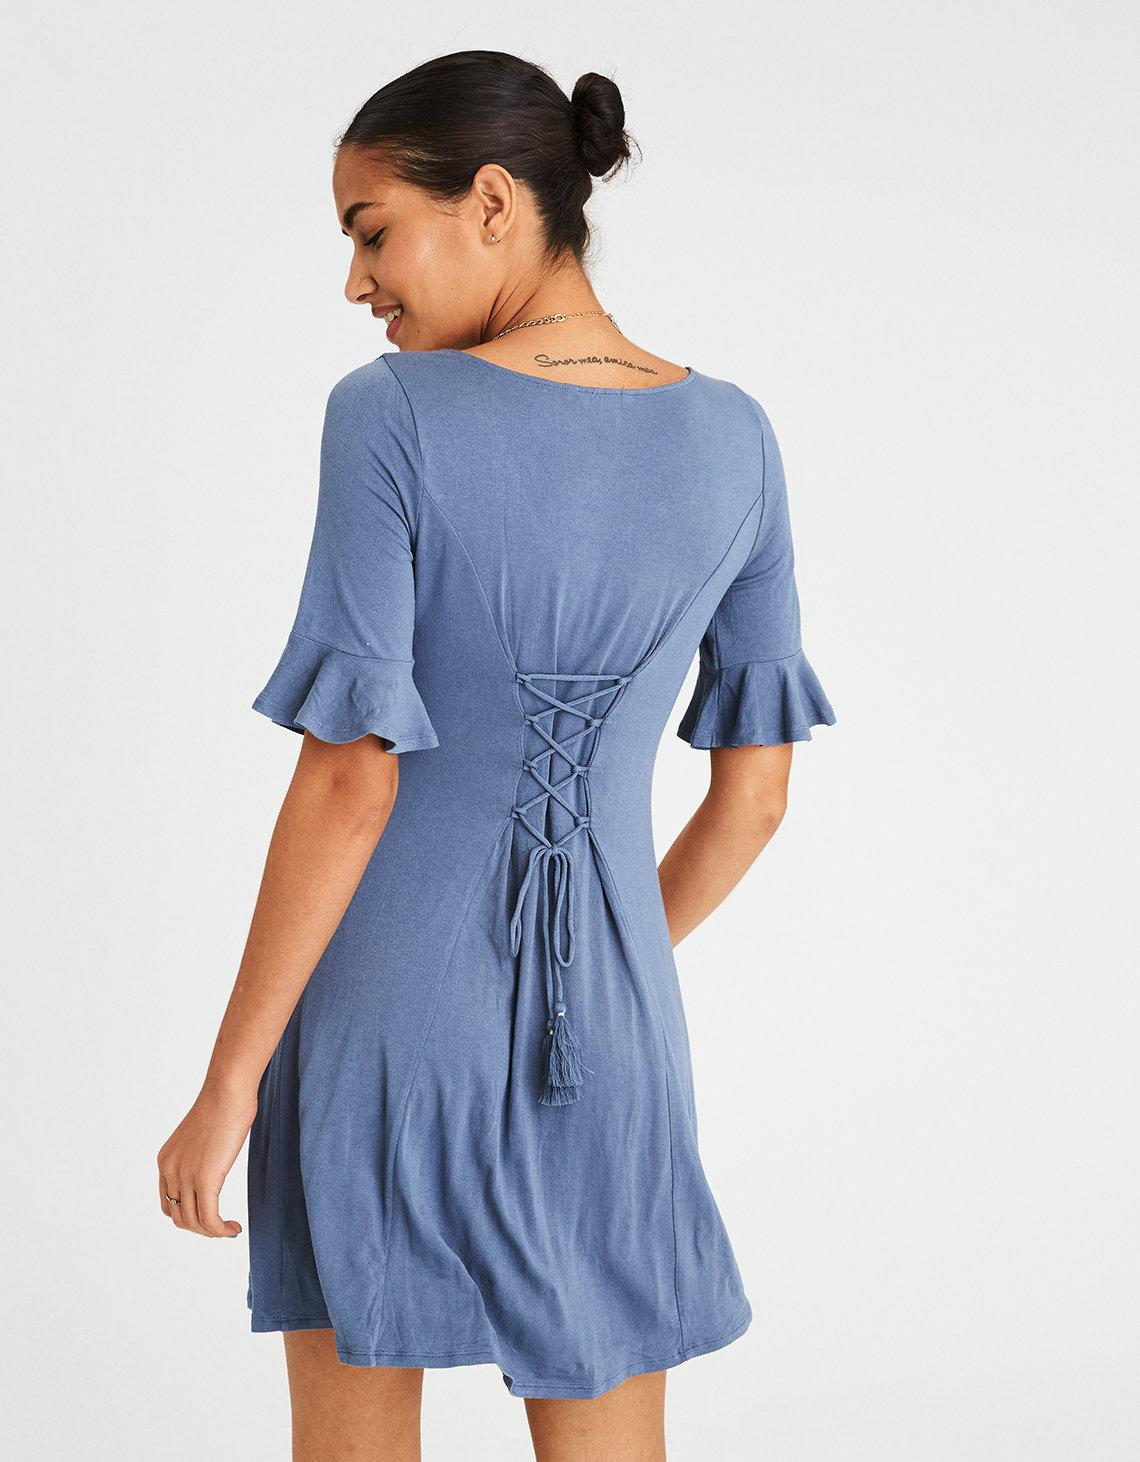 Button front sexy dress